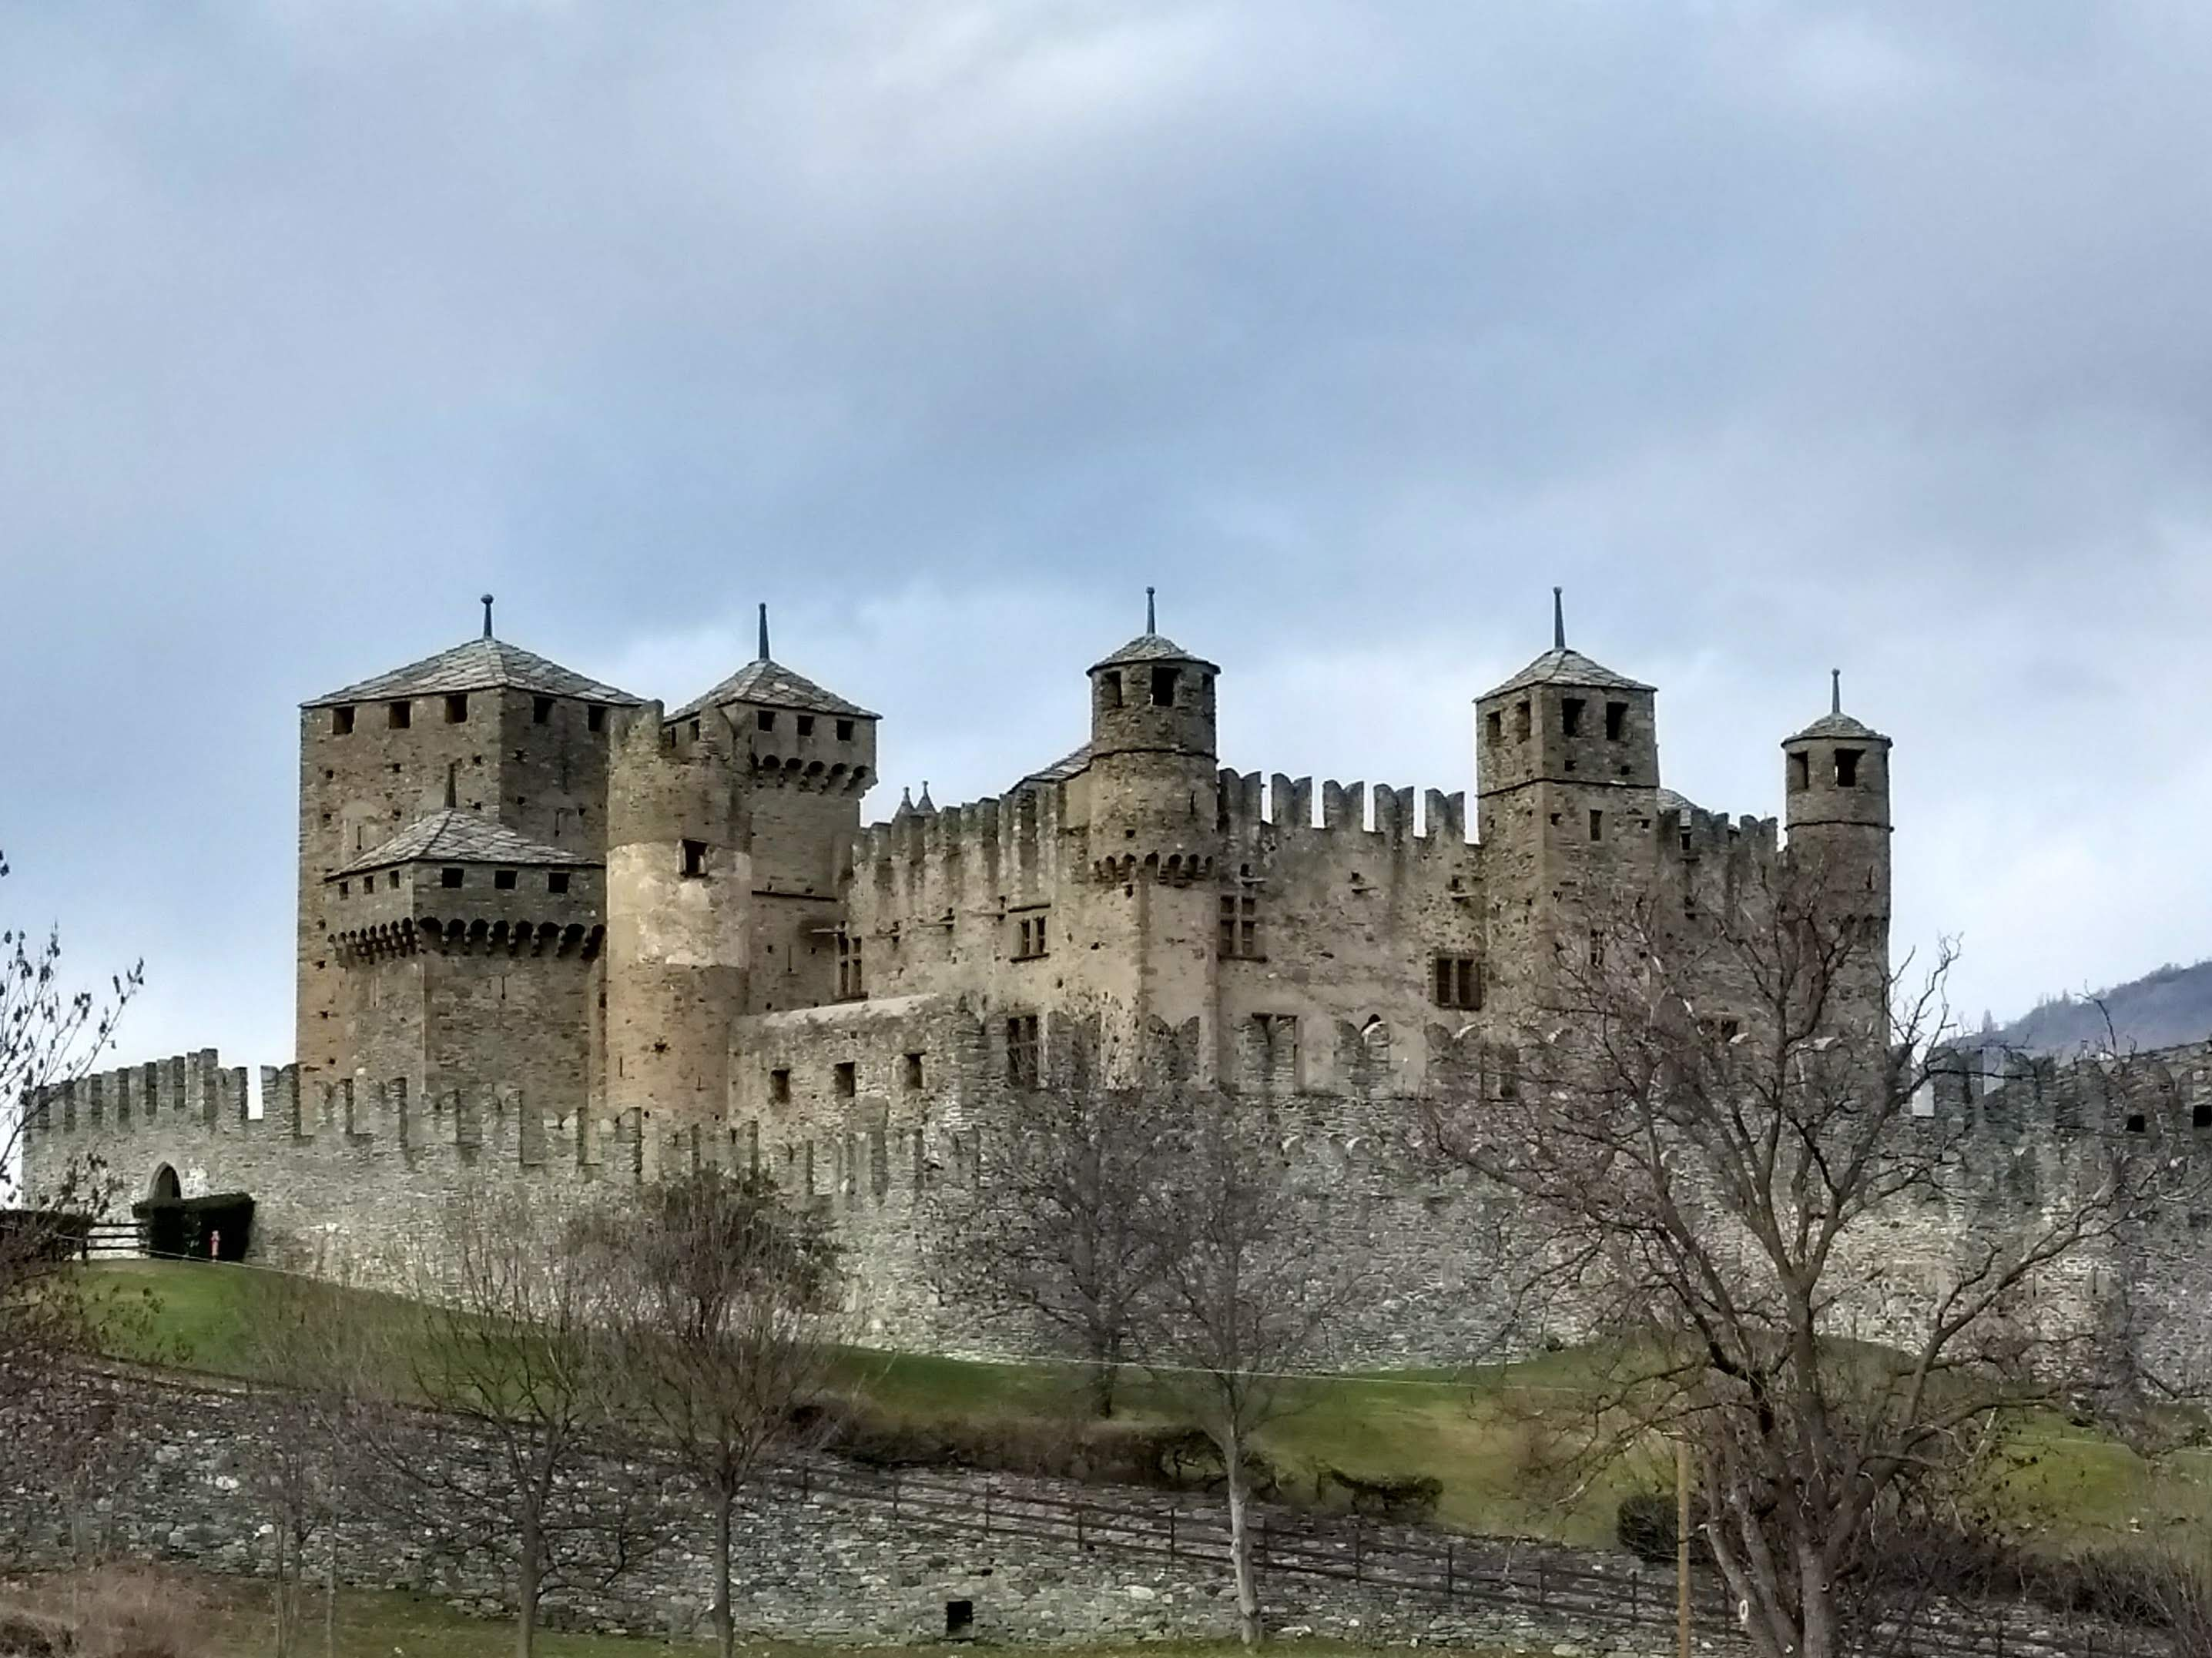 Castles and ruins of Aosta Valley guided tour